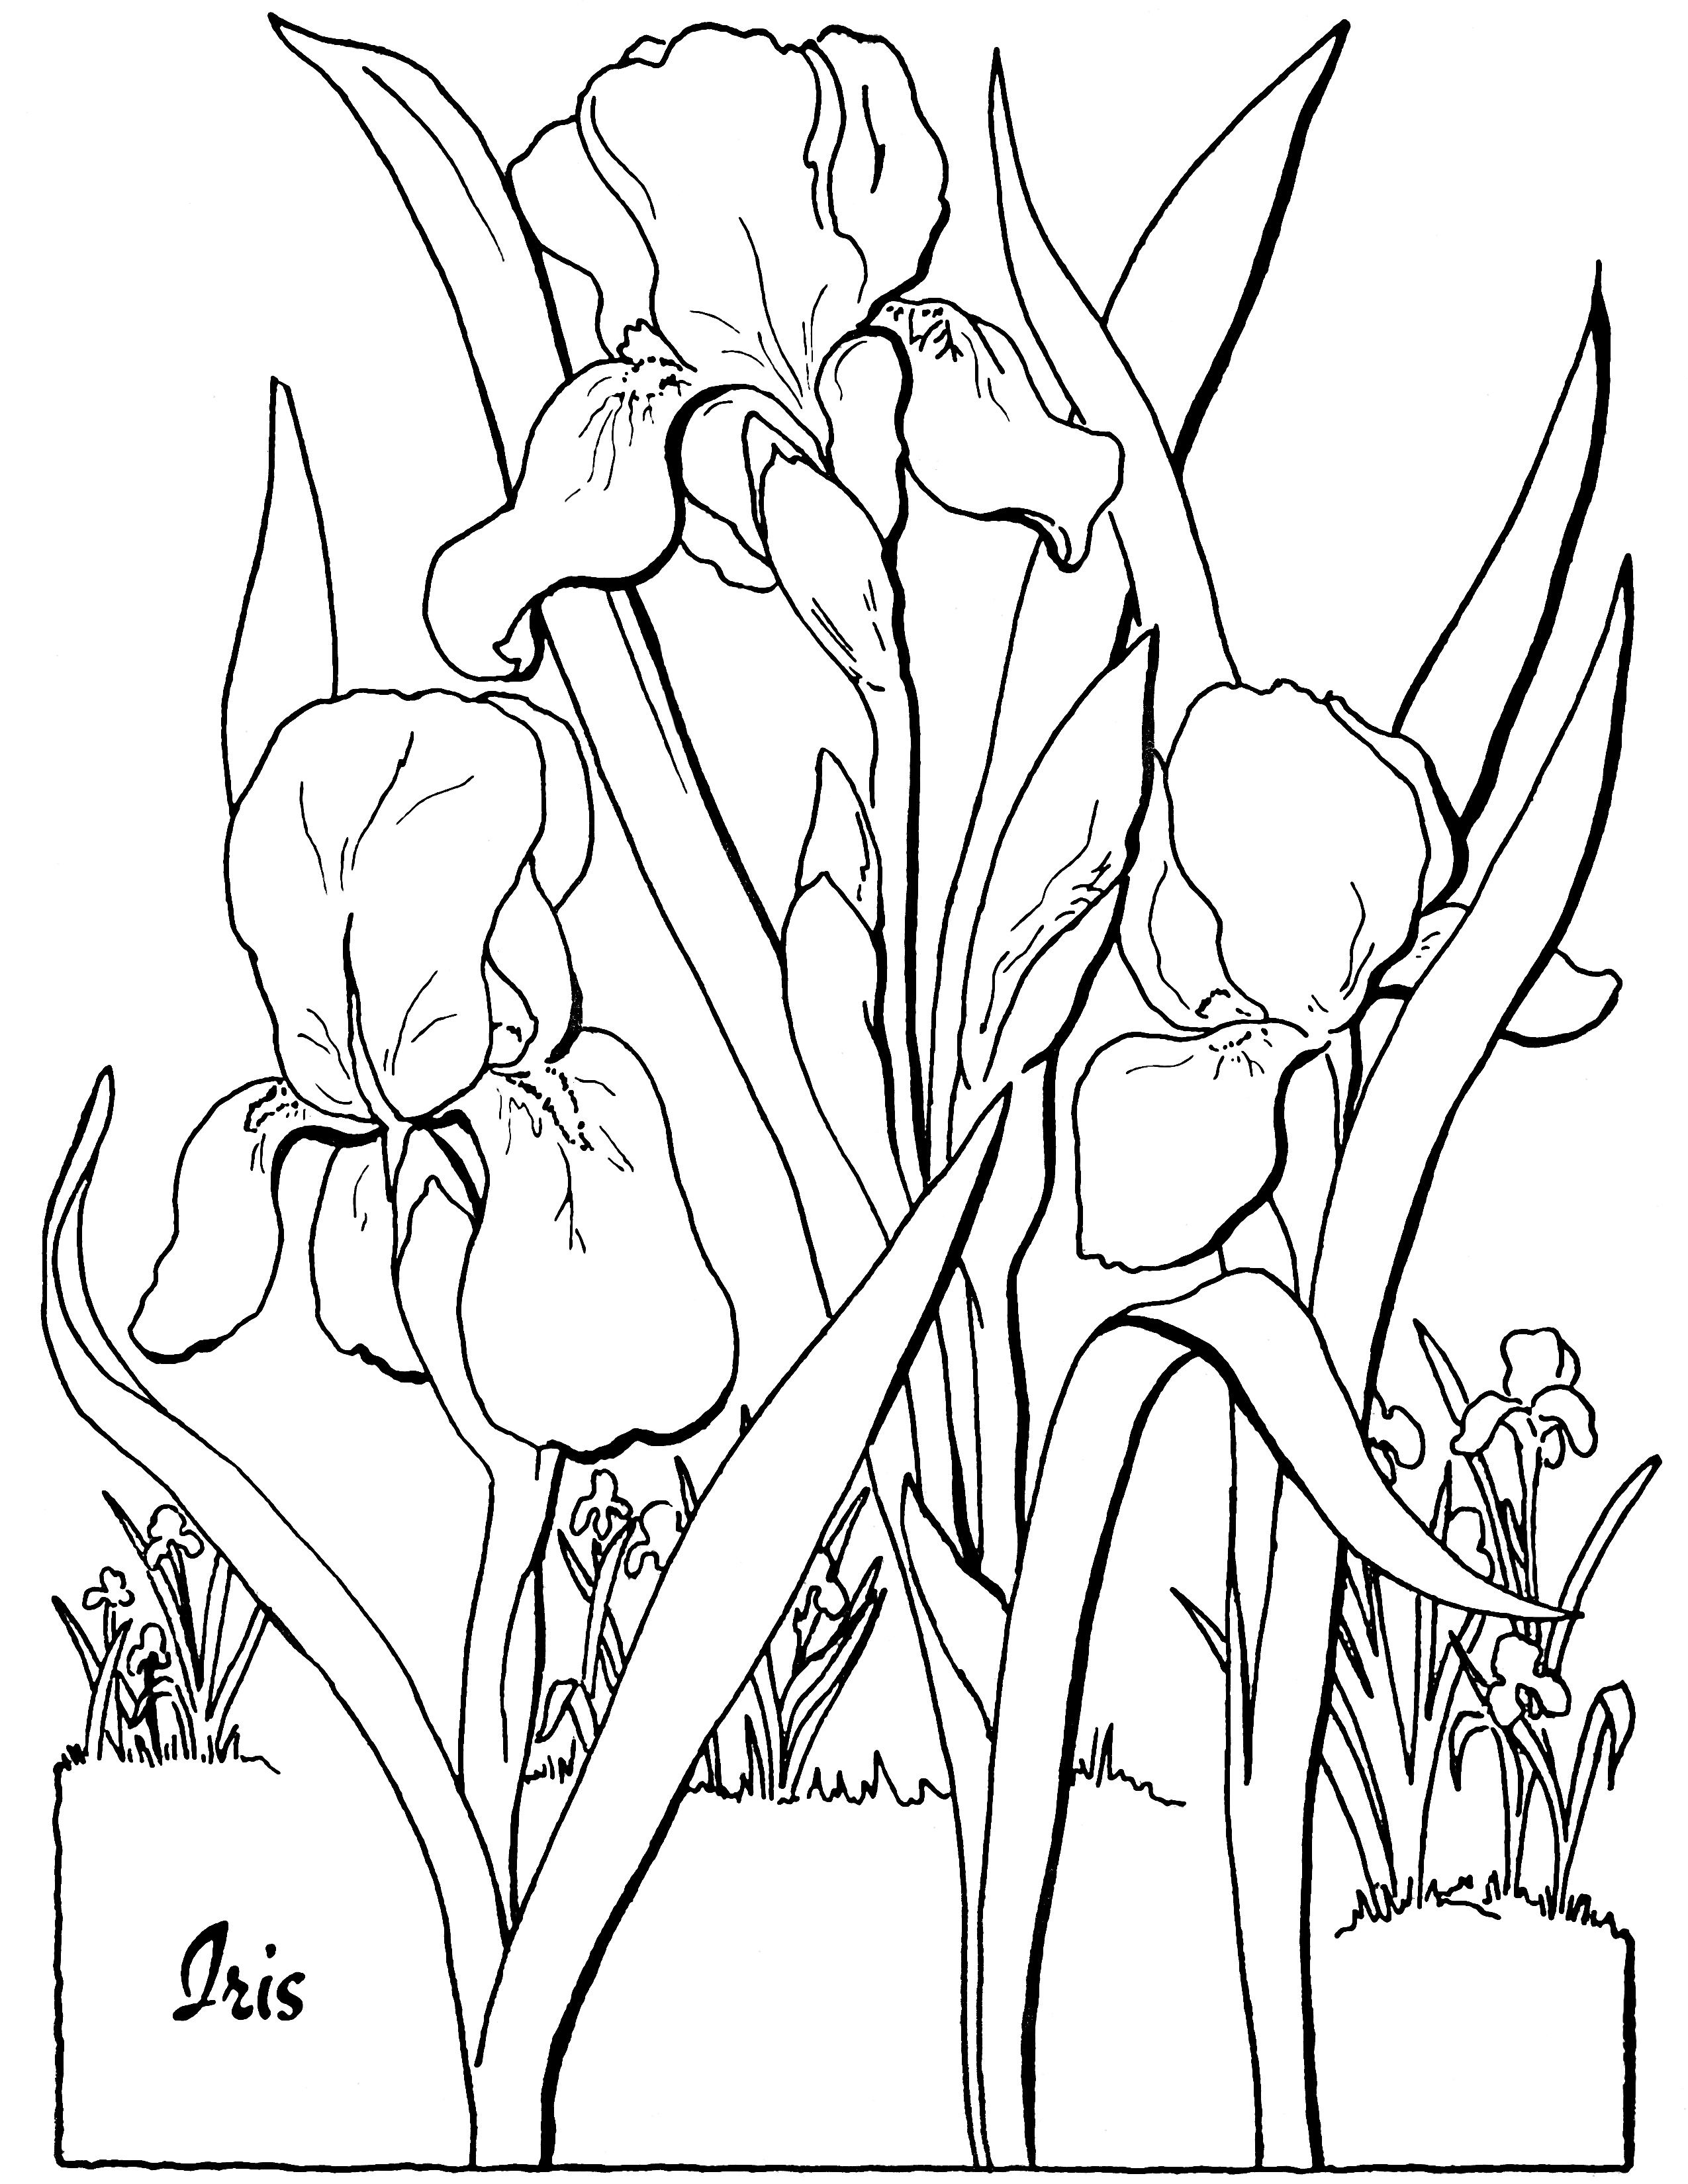 coloring adults pages adult coloring page coloring home adults coloring pages